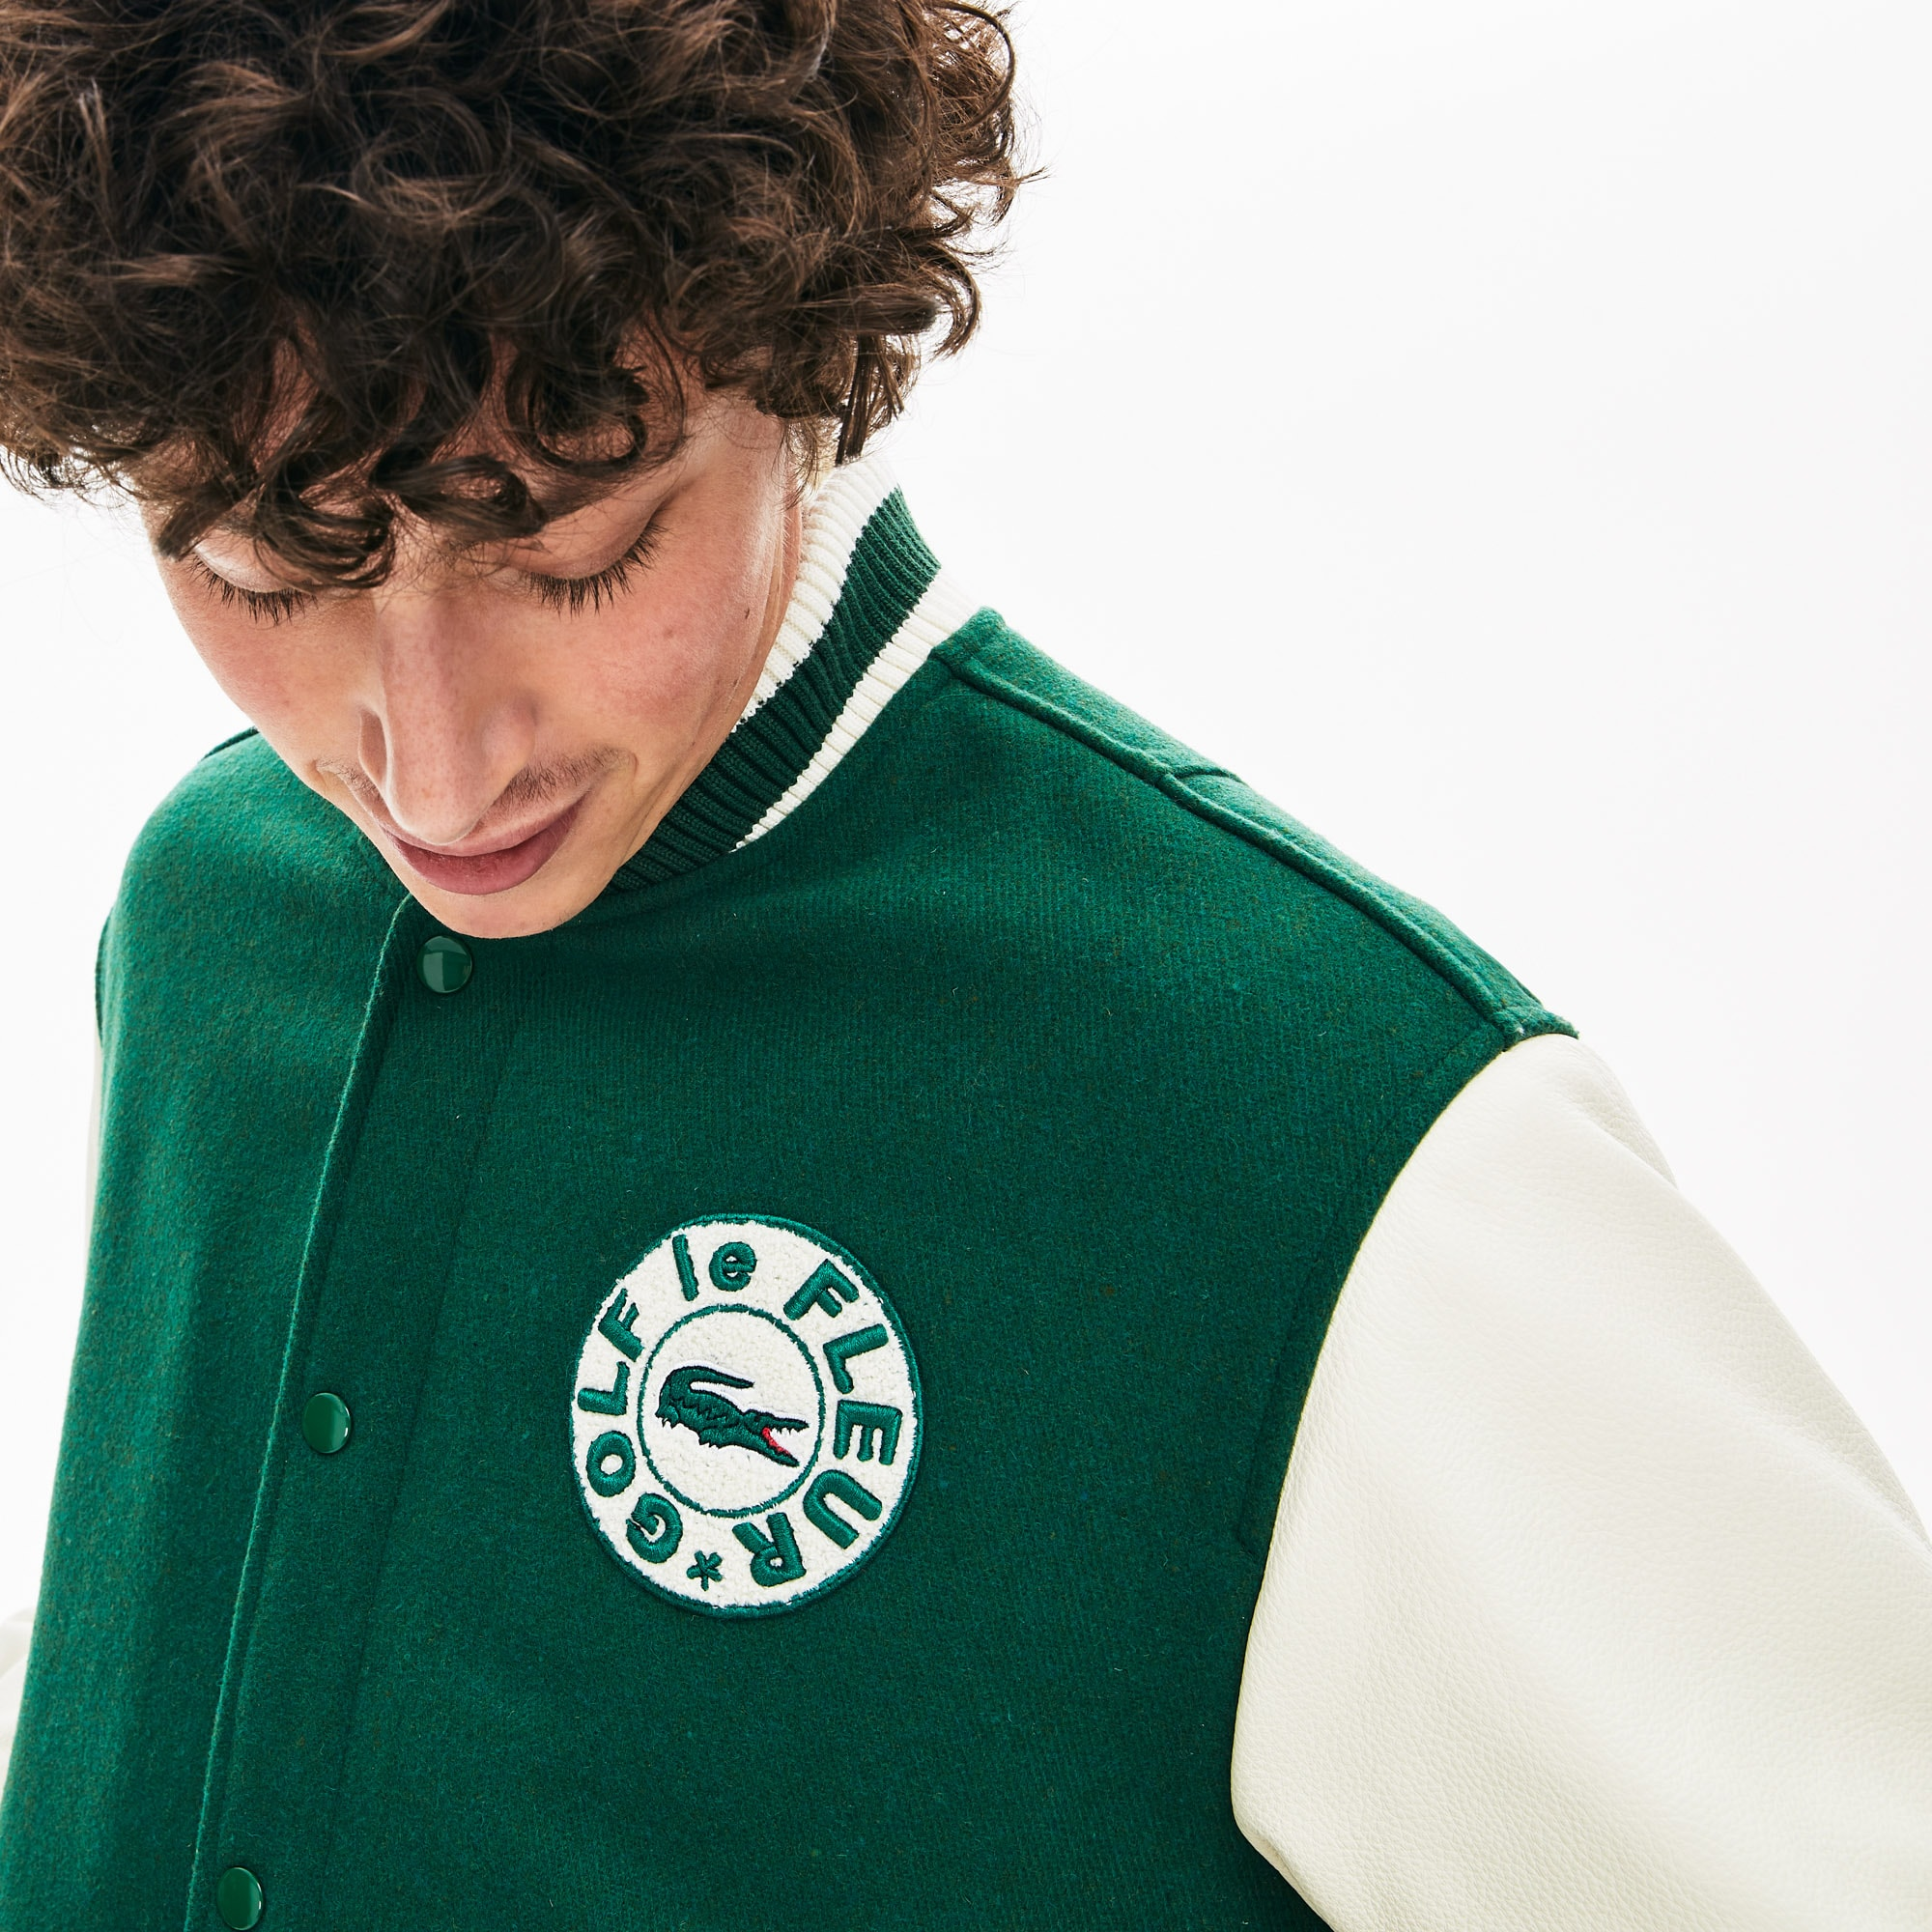 Lacoste x GOLF le FLEUR Two Tone Varsity Jacket